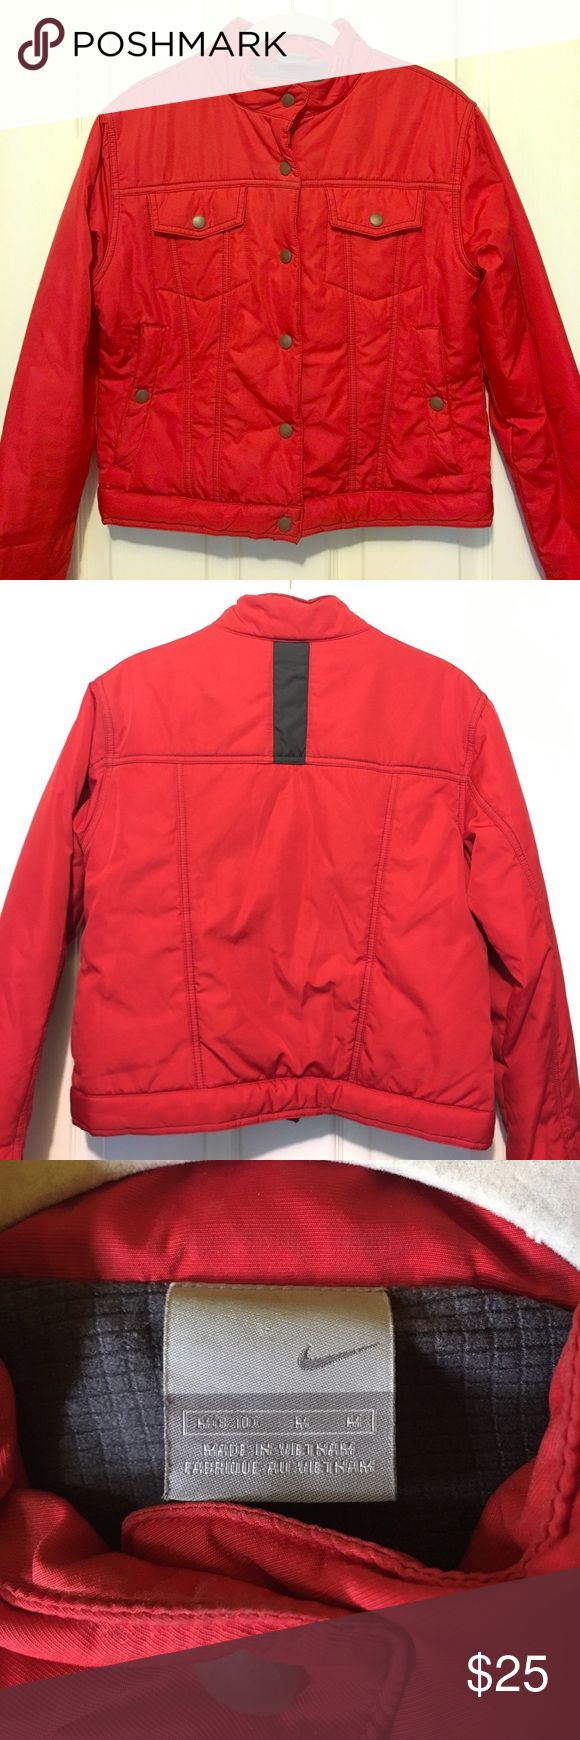 Red Nike Moto Style Button Up Jacket Thrifted this rare Nike find years ago but only wore it a handful of times since then. It's in like new condition in a beautiful bright red polyester that'll keep you warm, cozy, and stylish! Nike Jackets & Coats Puffers